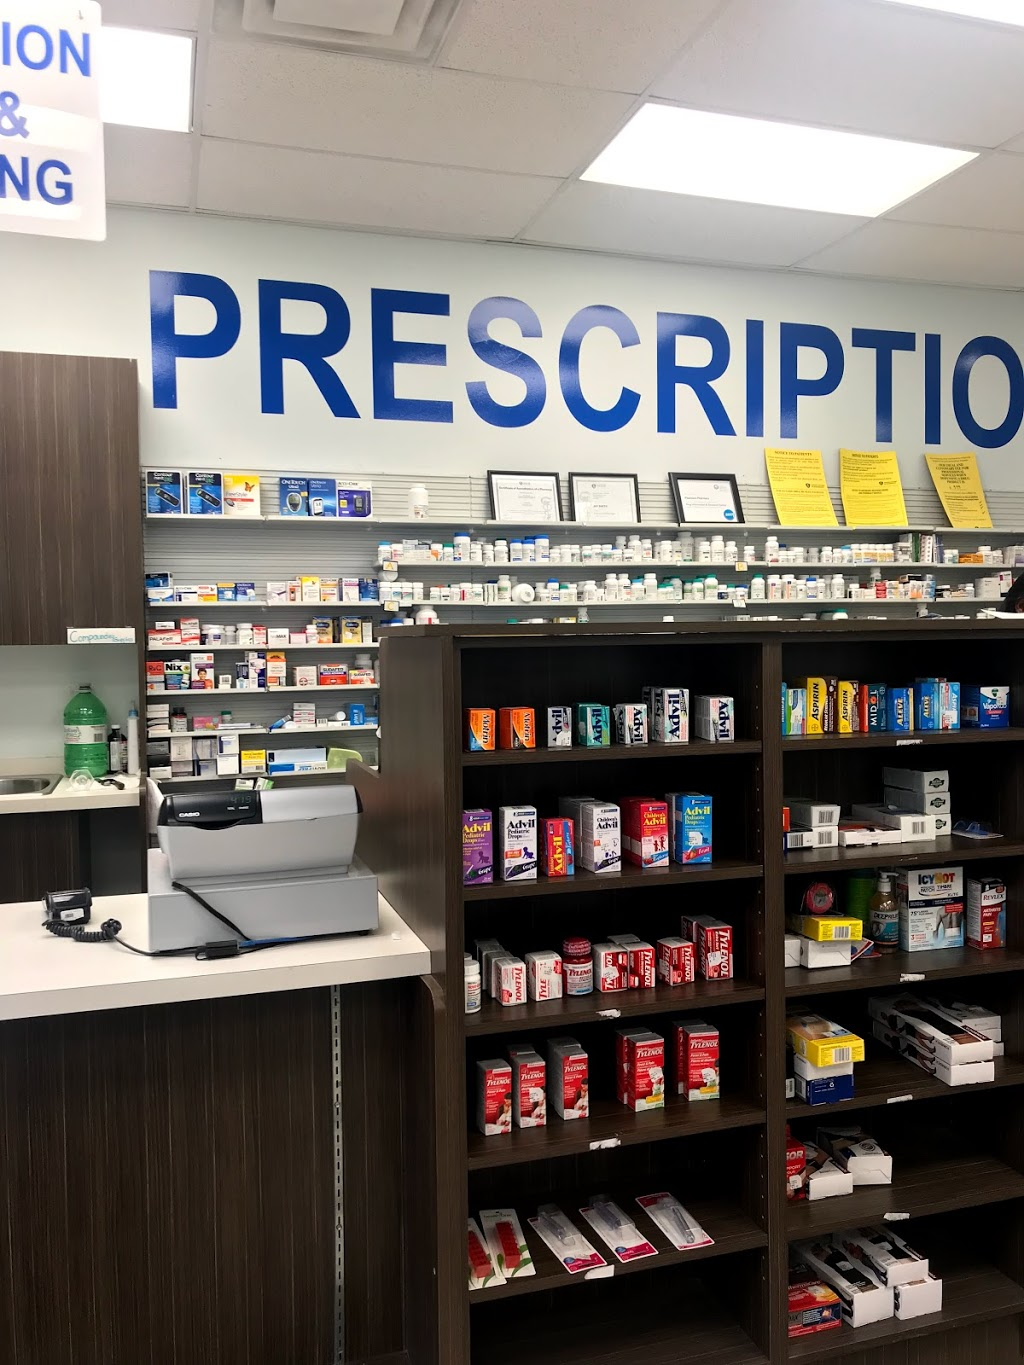 Super Clinic Medical Centre & Walk-In Clinic   health   2543 Pharmacy Ave, Scarborough, ON M1W 1H9, Canada   4164959500 OR +1 416-495-9500